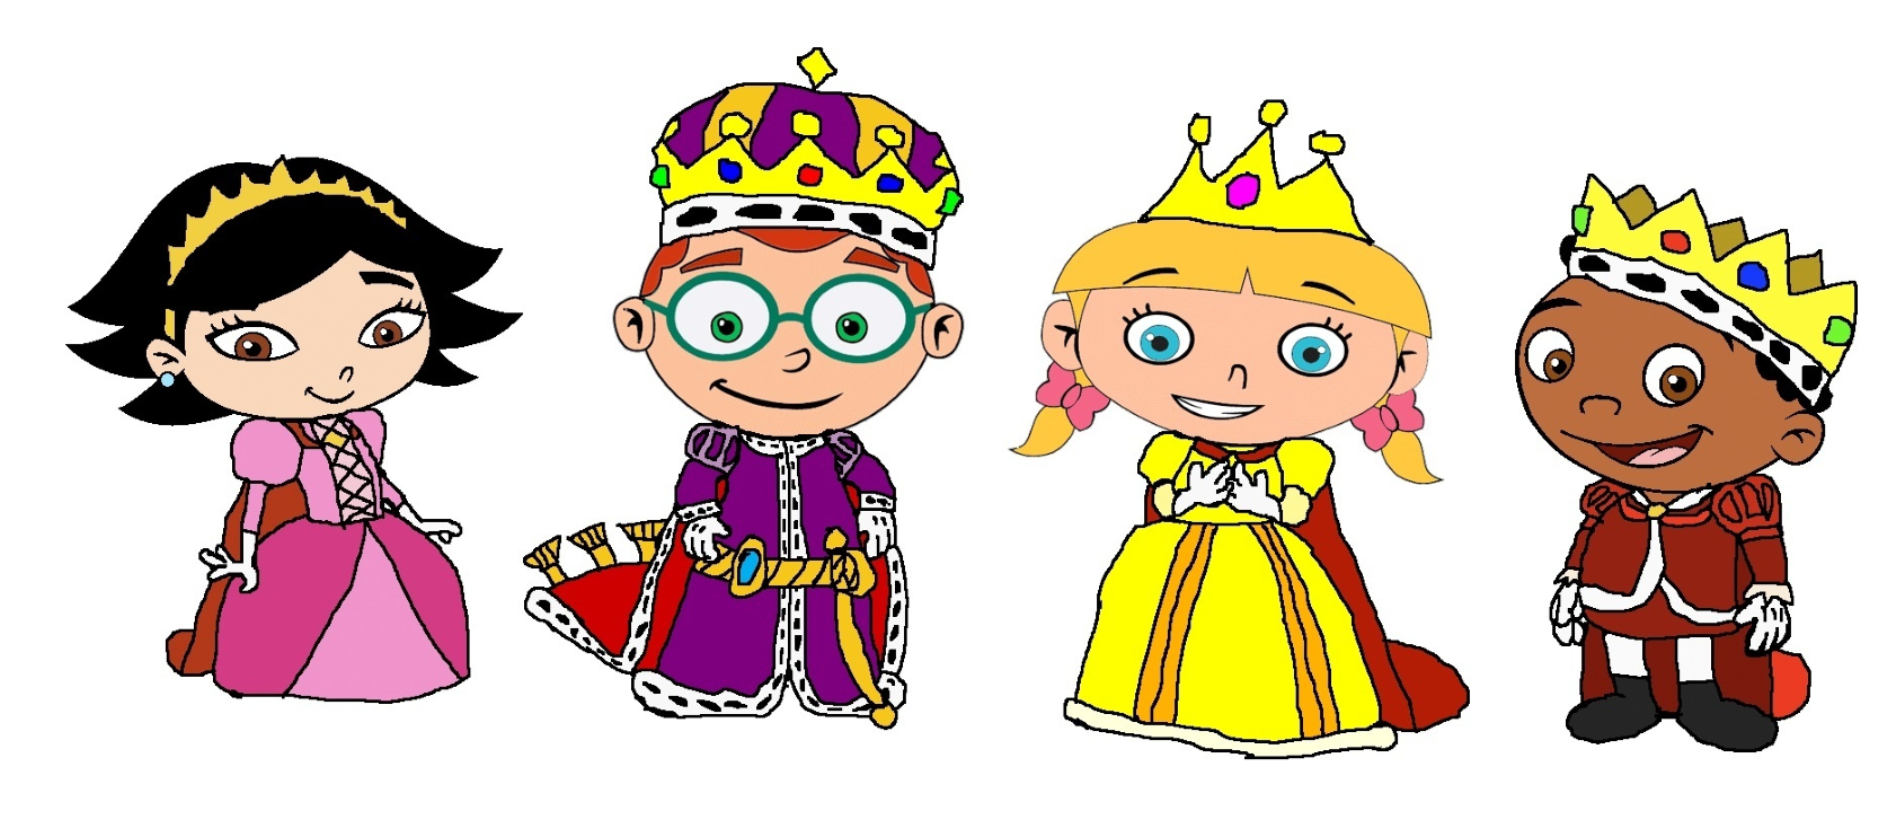 Princess clipart king and queen #8